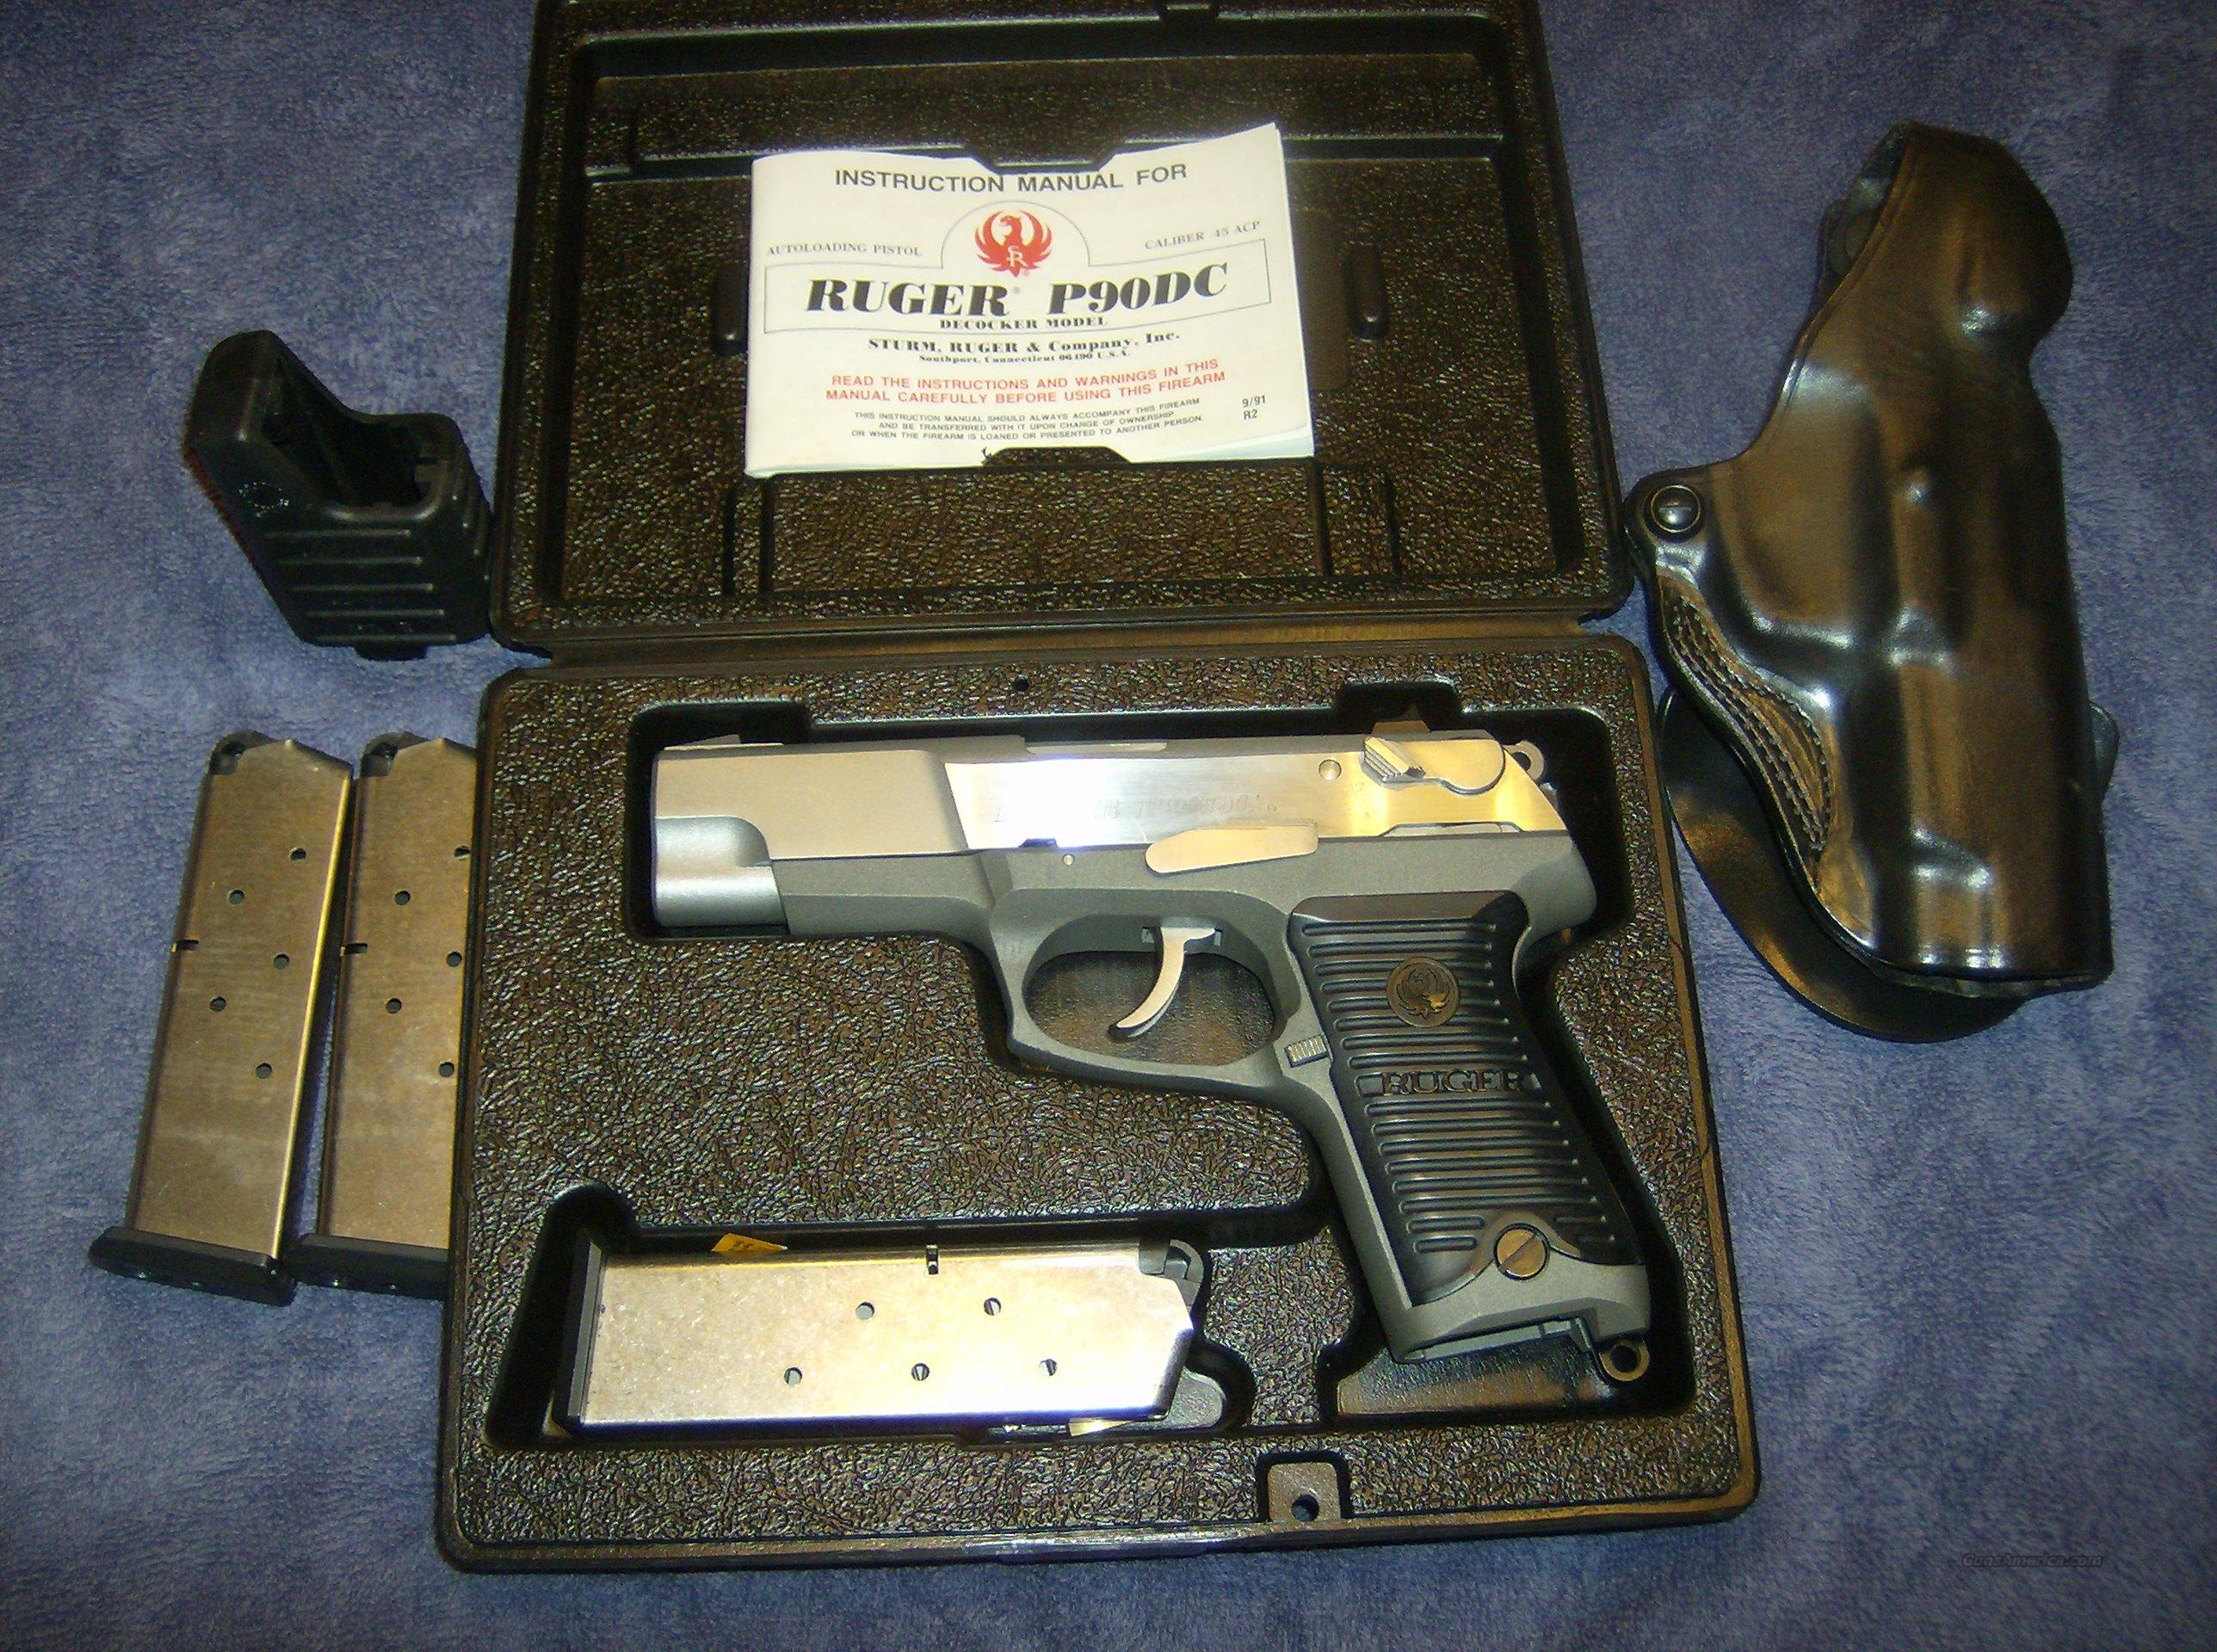 RUGER P90DC 45ACP AS NEW IN BOX  Guns > Pistols > Ruger Semi-Auto Pistols > P-Series